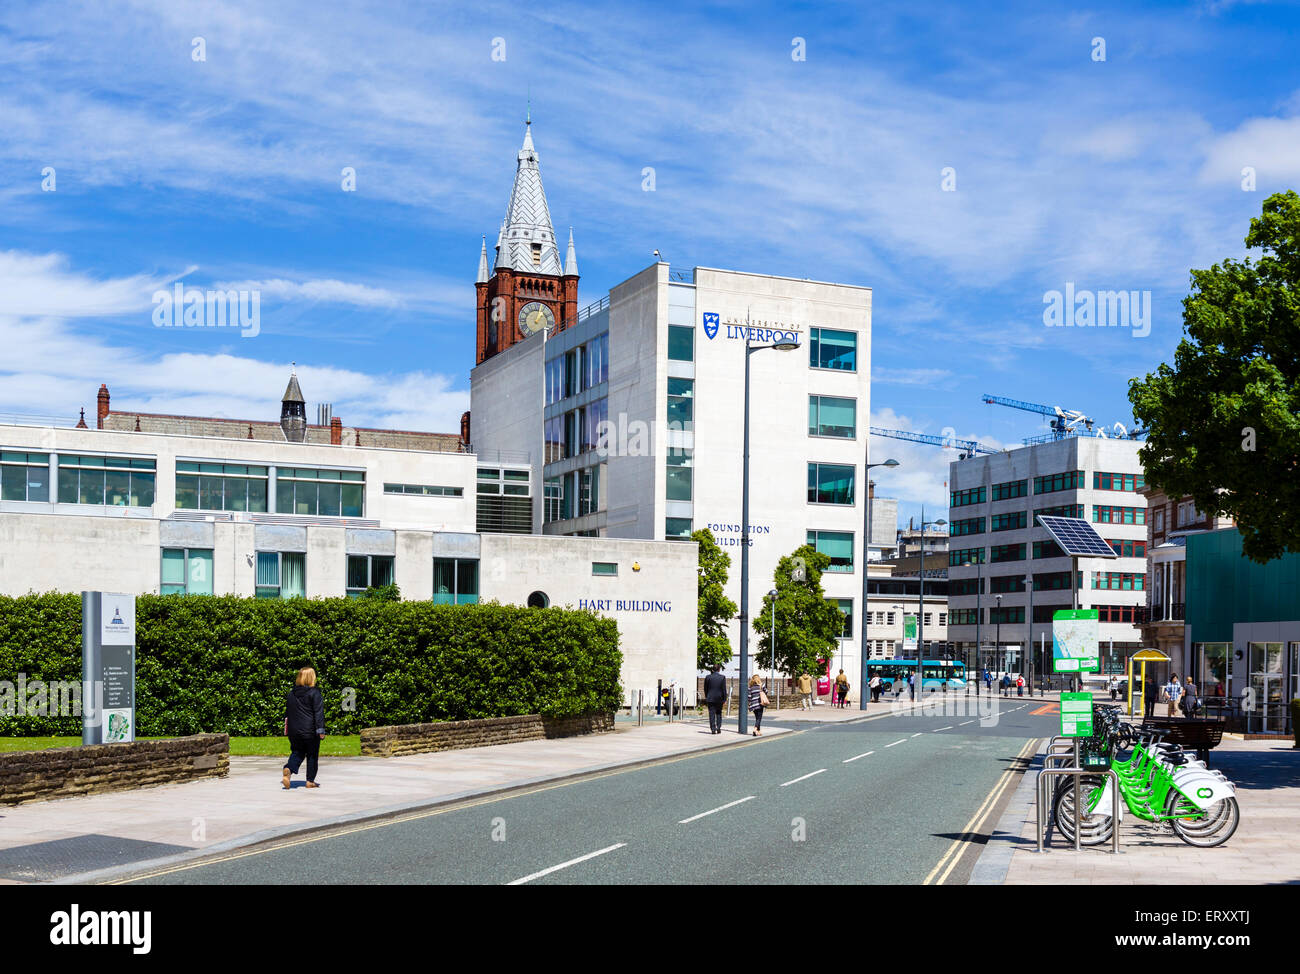 Campus of the University of Liverpool, Mount Pleasant, Liverpool, Merseyside, England, UK - Stock Image